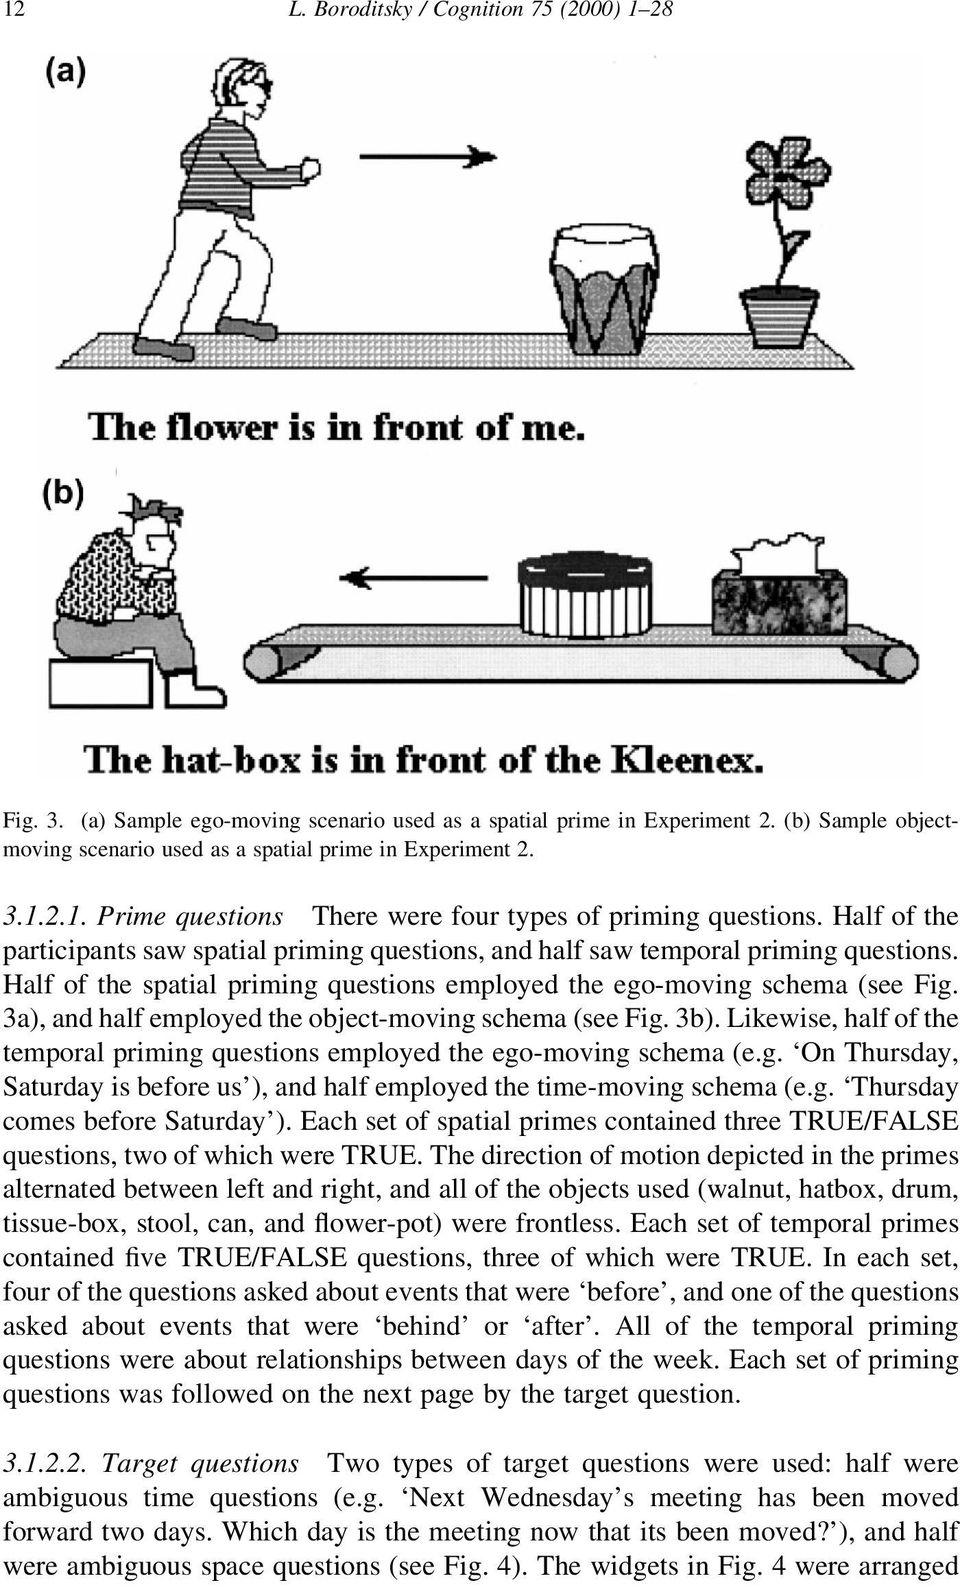 3a), and half employed the object-moving schema (see Fig. 3b). Likewise, half of the temporal priming questions employed the ego-moving schema (e.g. `On Thursday, Saturday is before us'), and half employed the time-moving schema (e.